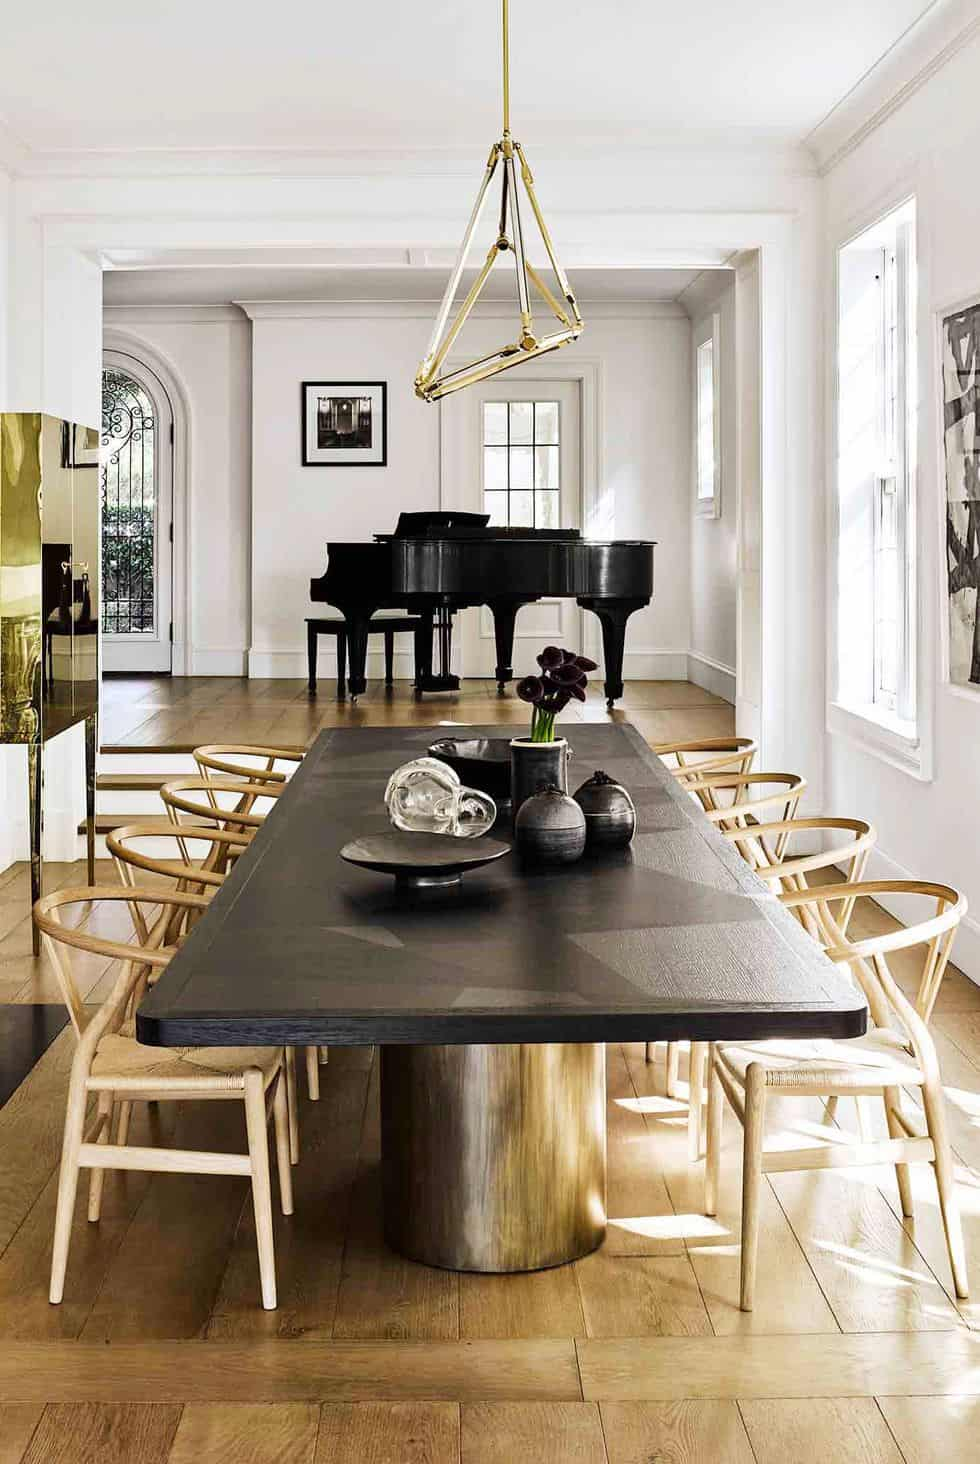 7 Chic Ideas To Decorate Your Dining Table